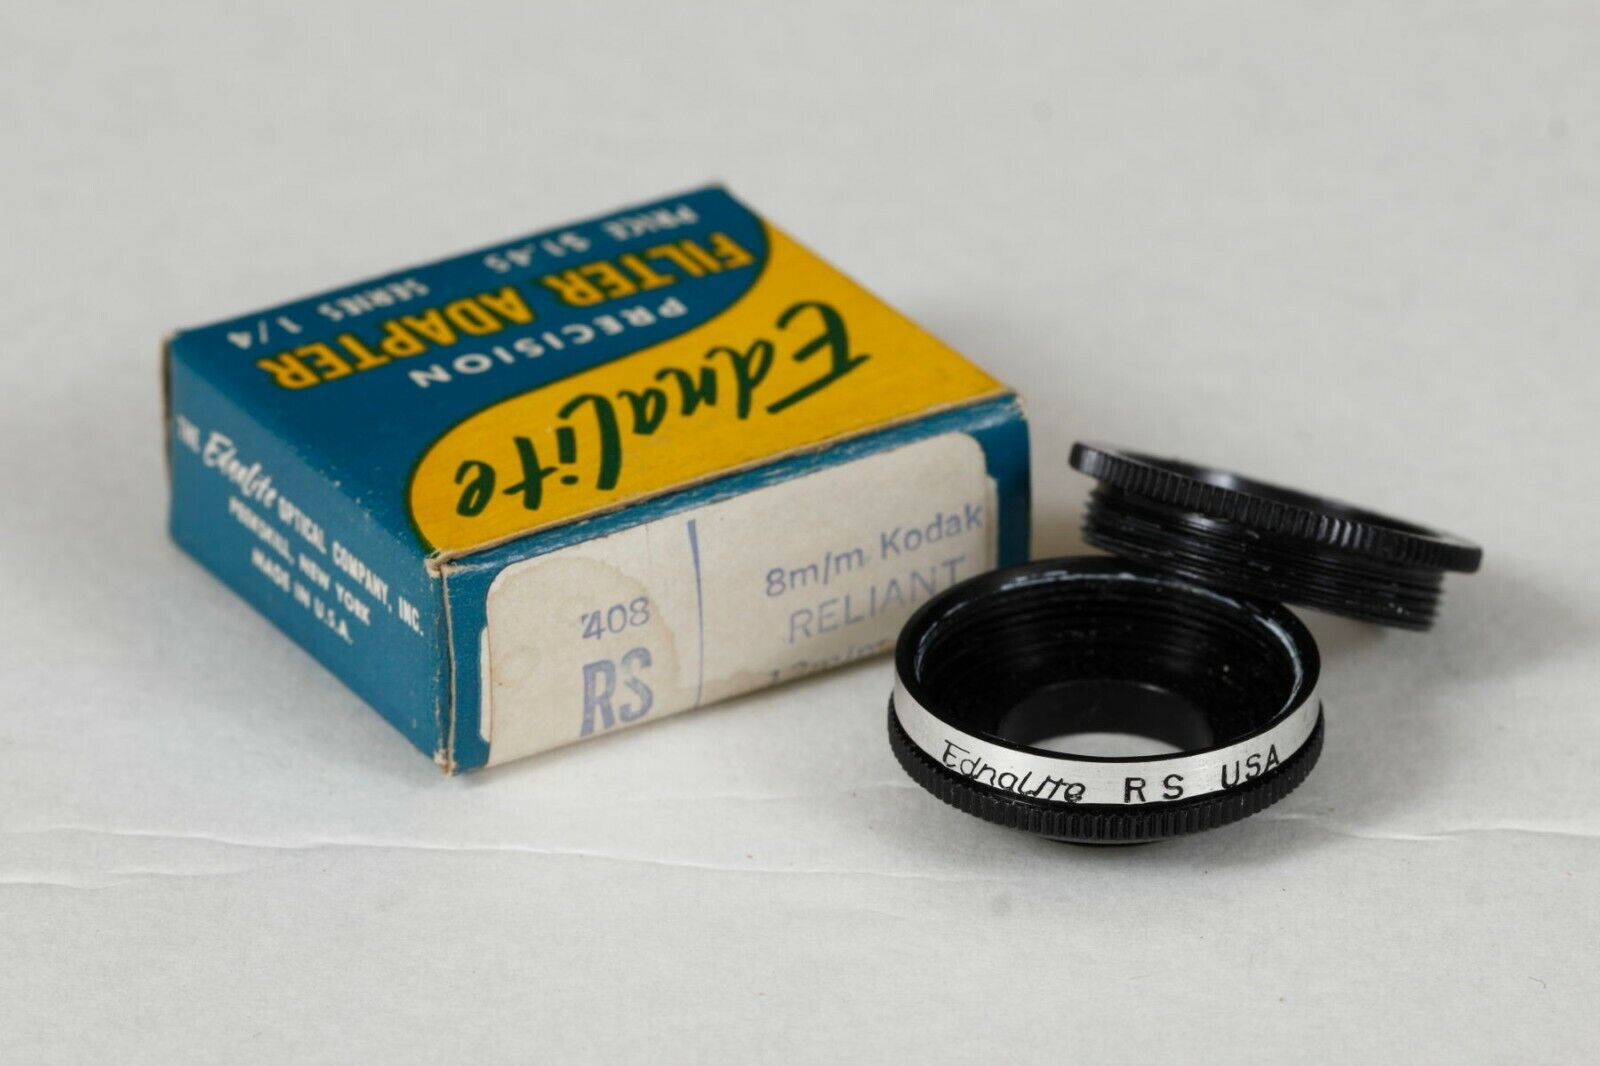 Ednalite 408RS Series 1/4 Screw-in Adapter For Kodak Reliant 8mm - $14.25